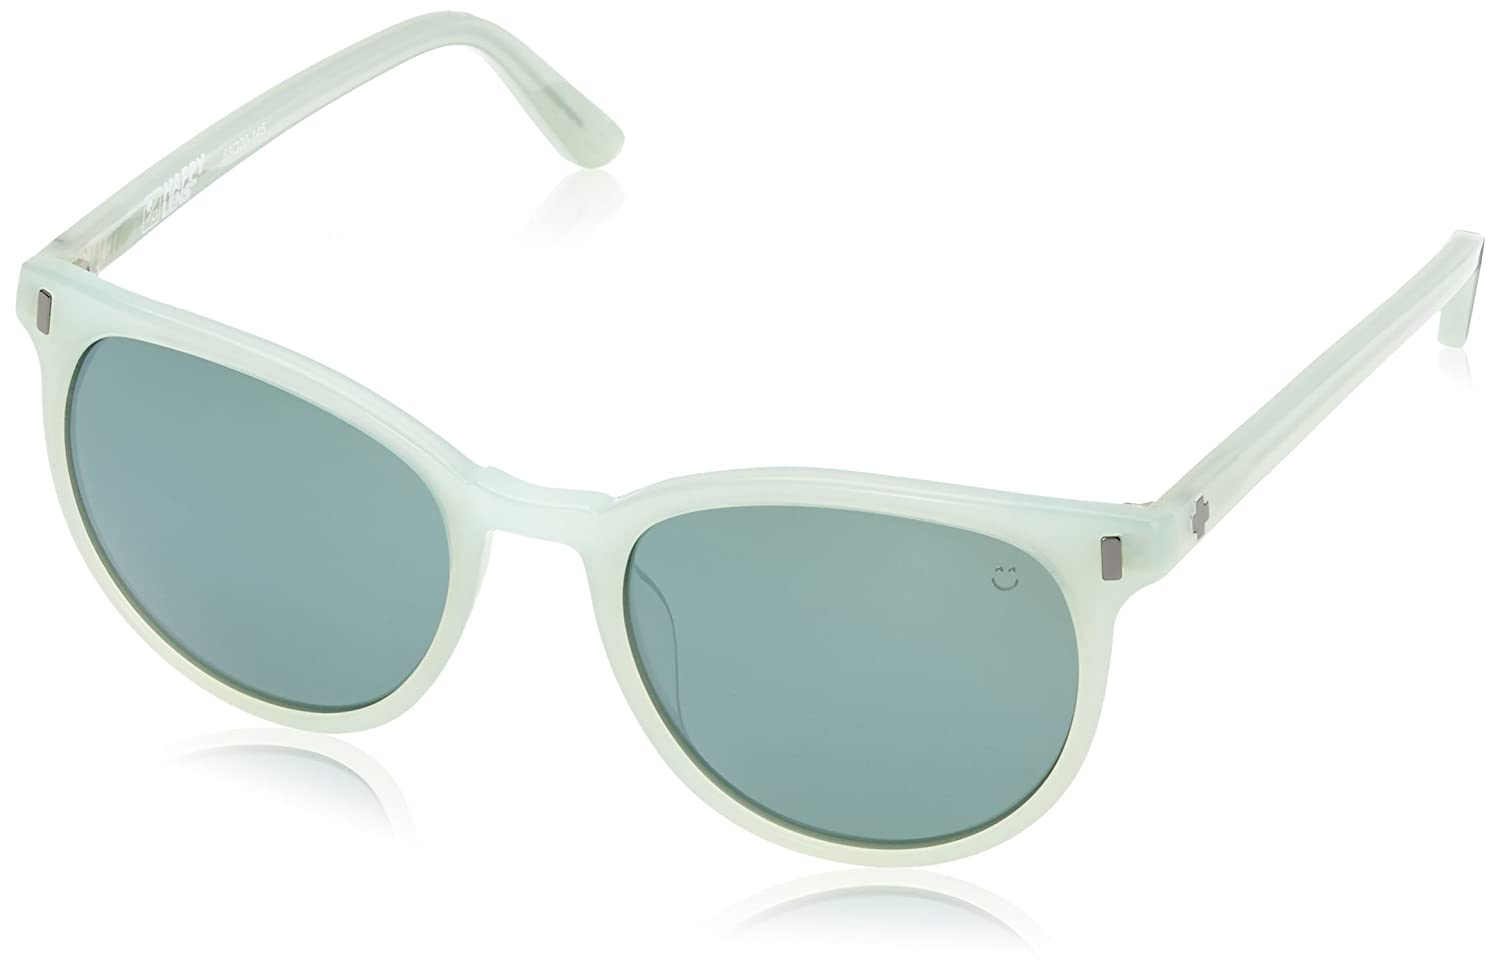 Spy Sonnenbrille ALCATRAZ, happy gray green/silver mirror, 673121080352